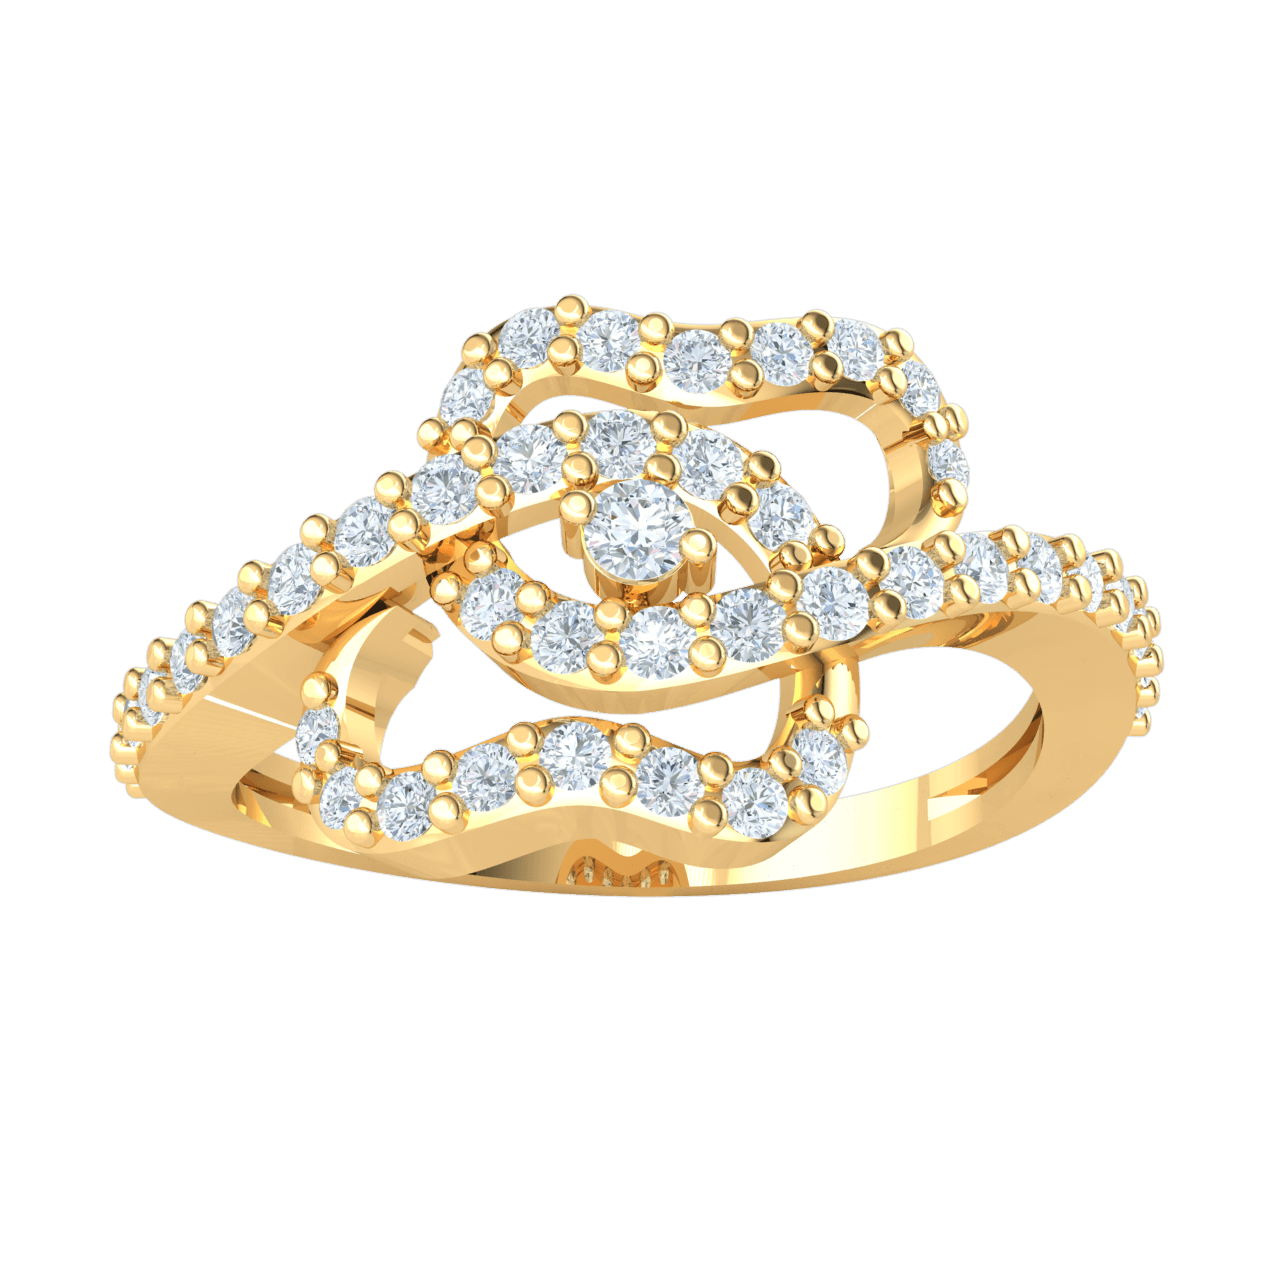 0.42 Ct IJ SI2 Glamerous Real Ring With A Magnificent Arrangement Of Swirls Covered In White Diamonds in 14 kt Gold